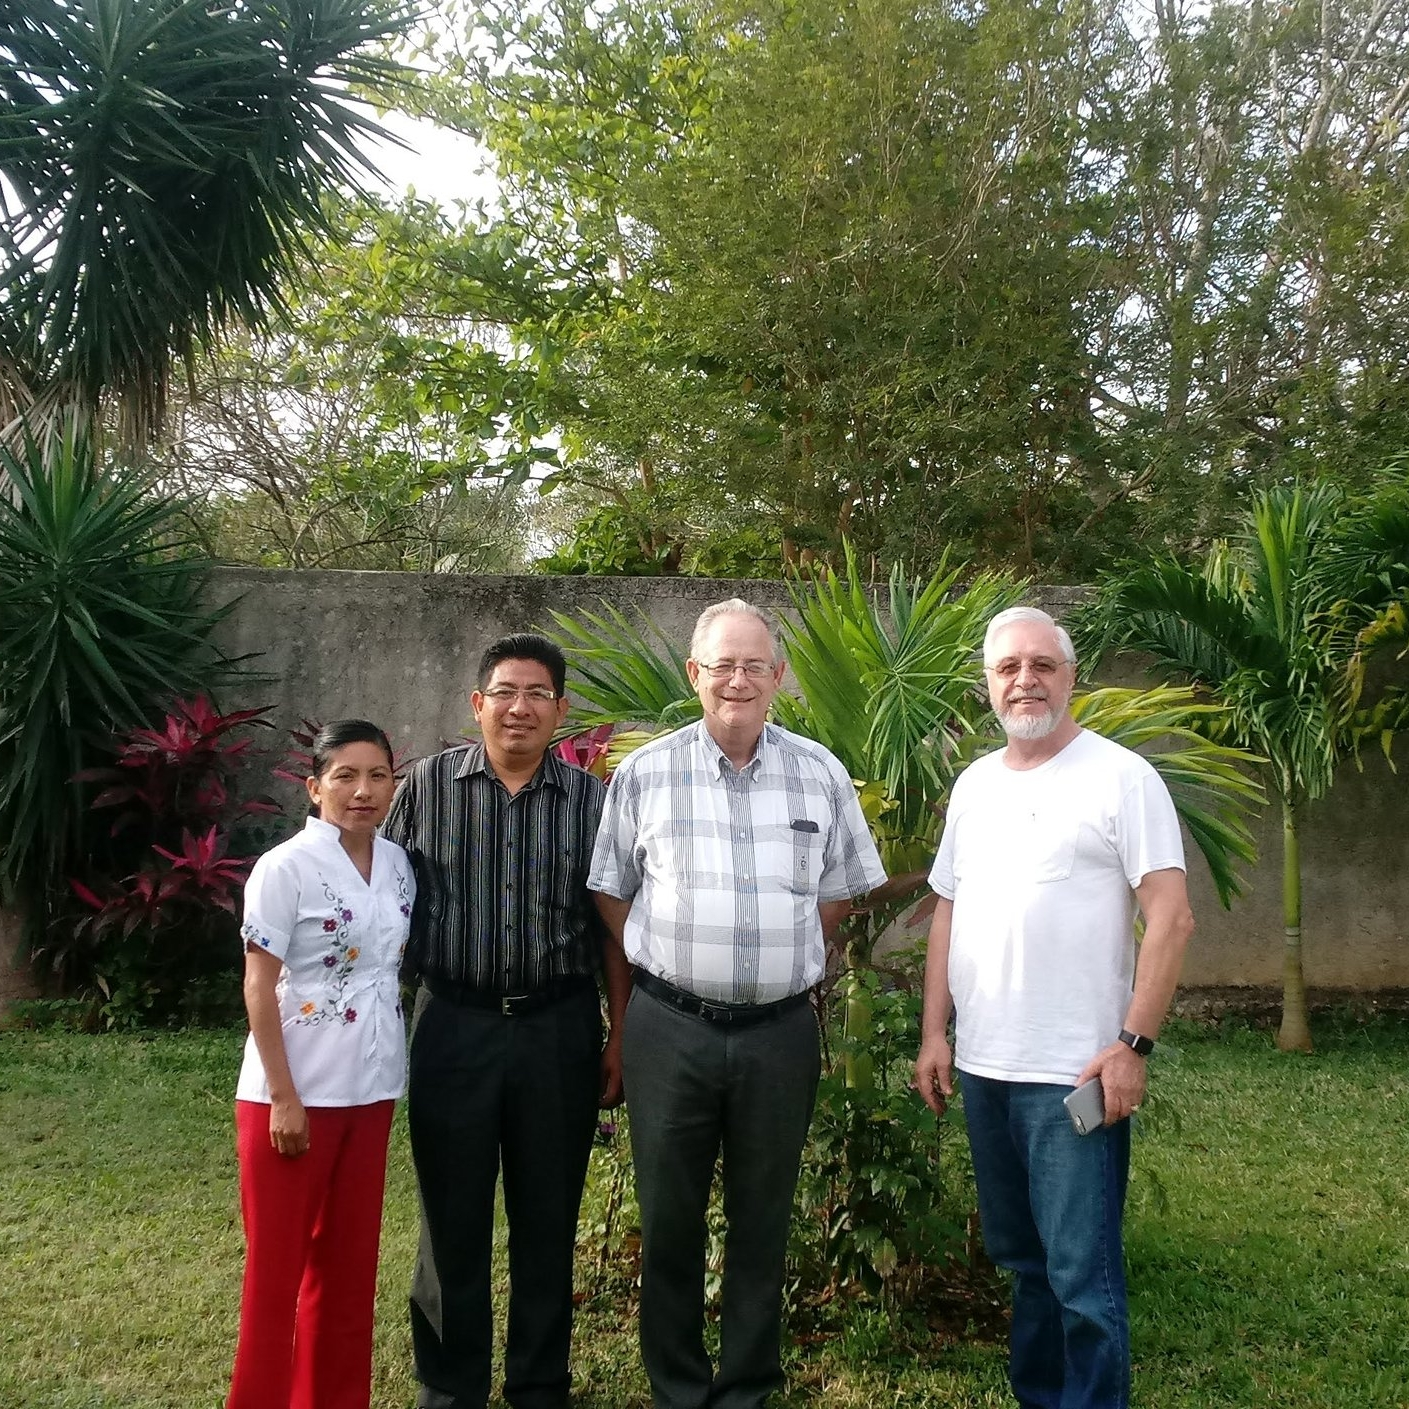 L-R: Maria Beh, Rev. Isaias Beh,  Dr. Don Wehmayer (The Antioch Partners) and Dr. José Carlos Pezini (The Outreach Foundation) discuss mentoring and spiritual formation among Latin Americans.